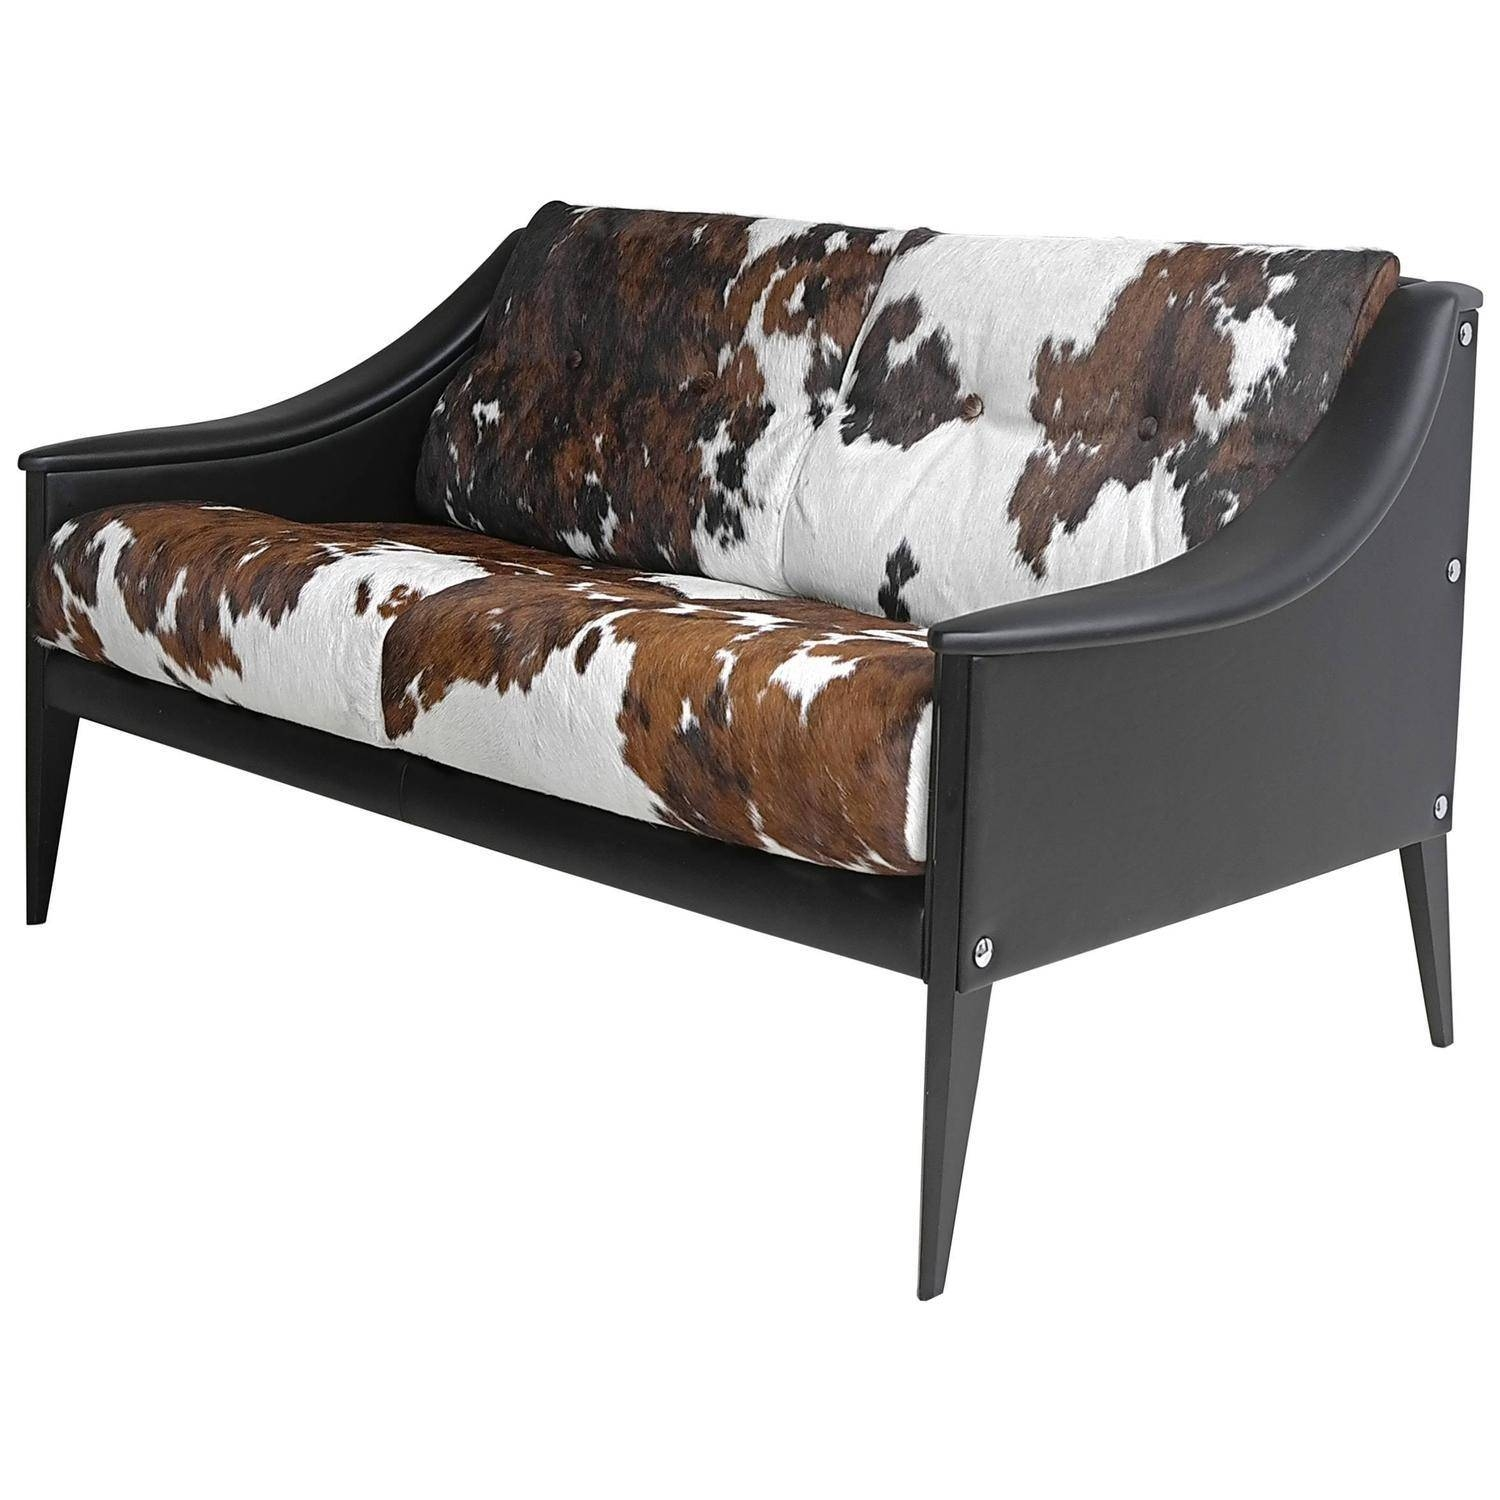 20+ Choices Of Cowhide Sofas | Sofa Ideas Pertaining To Cowhide Sofas (View 2 of 15)